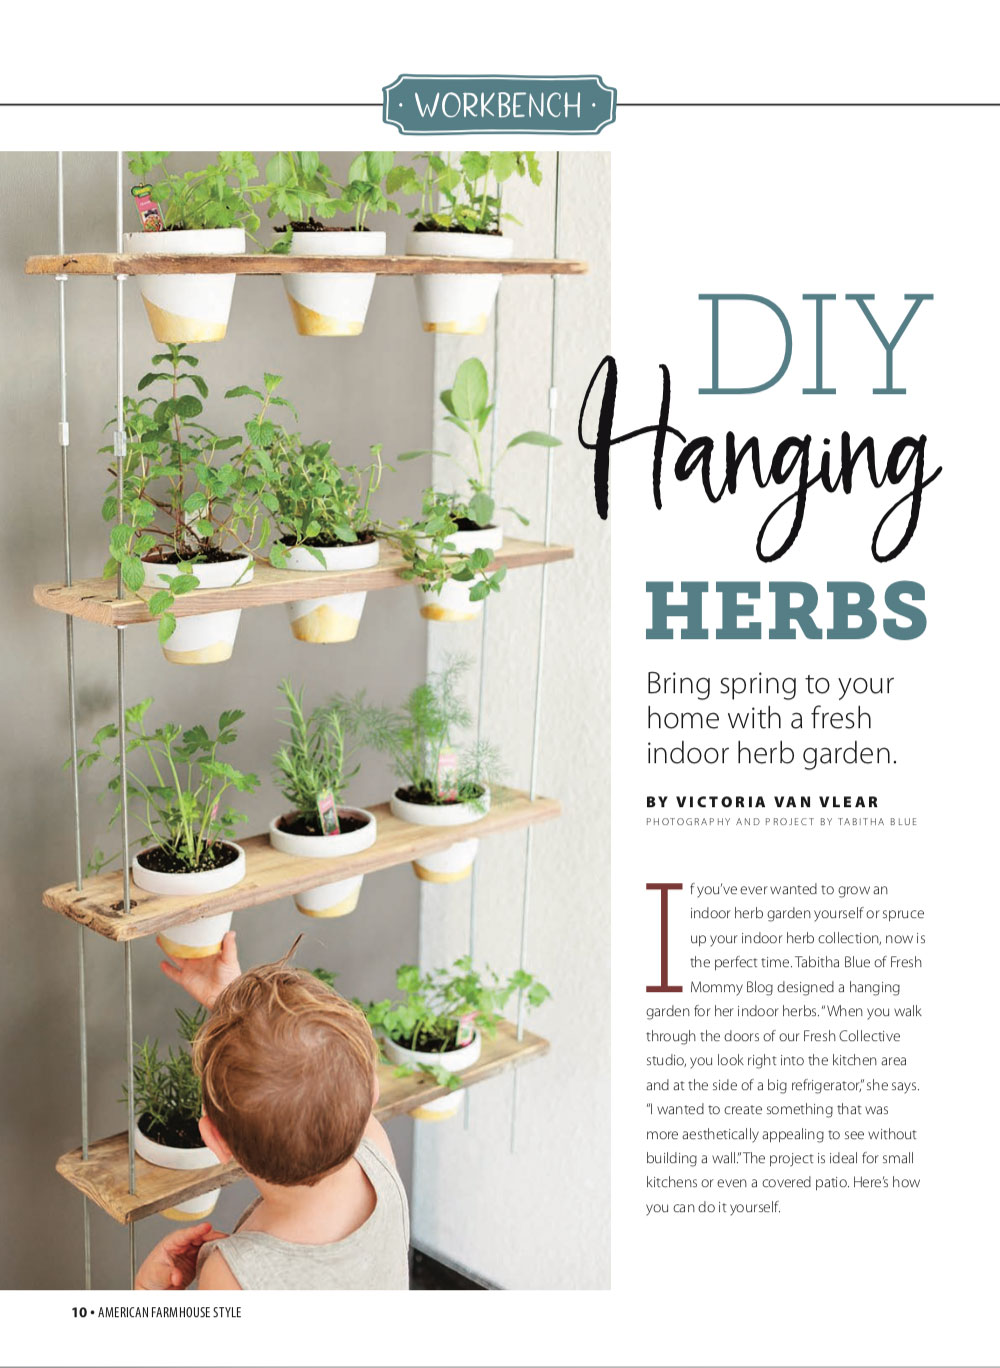 DIY Hanging Herb Garden featured in American Farmhouse